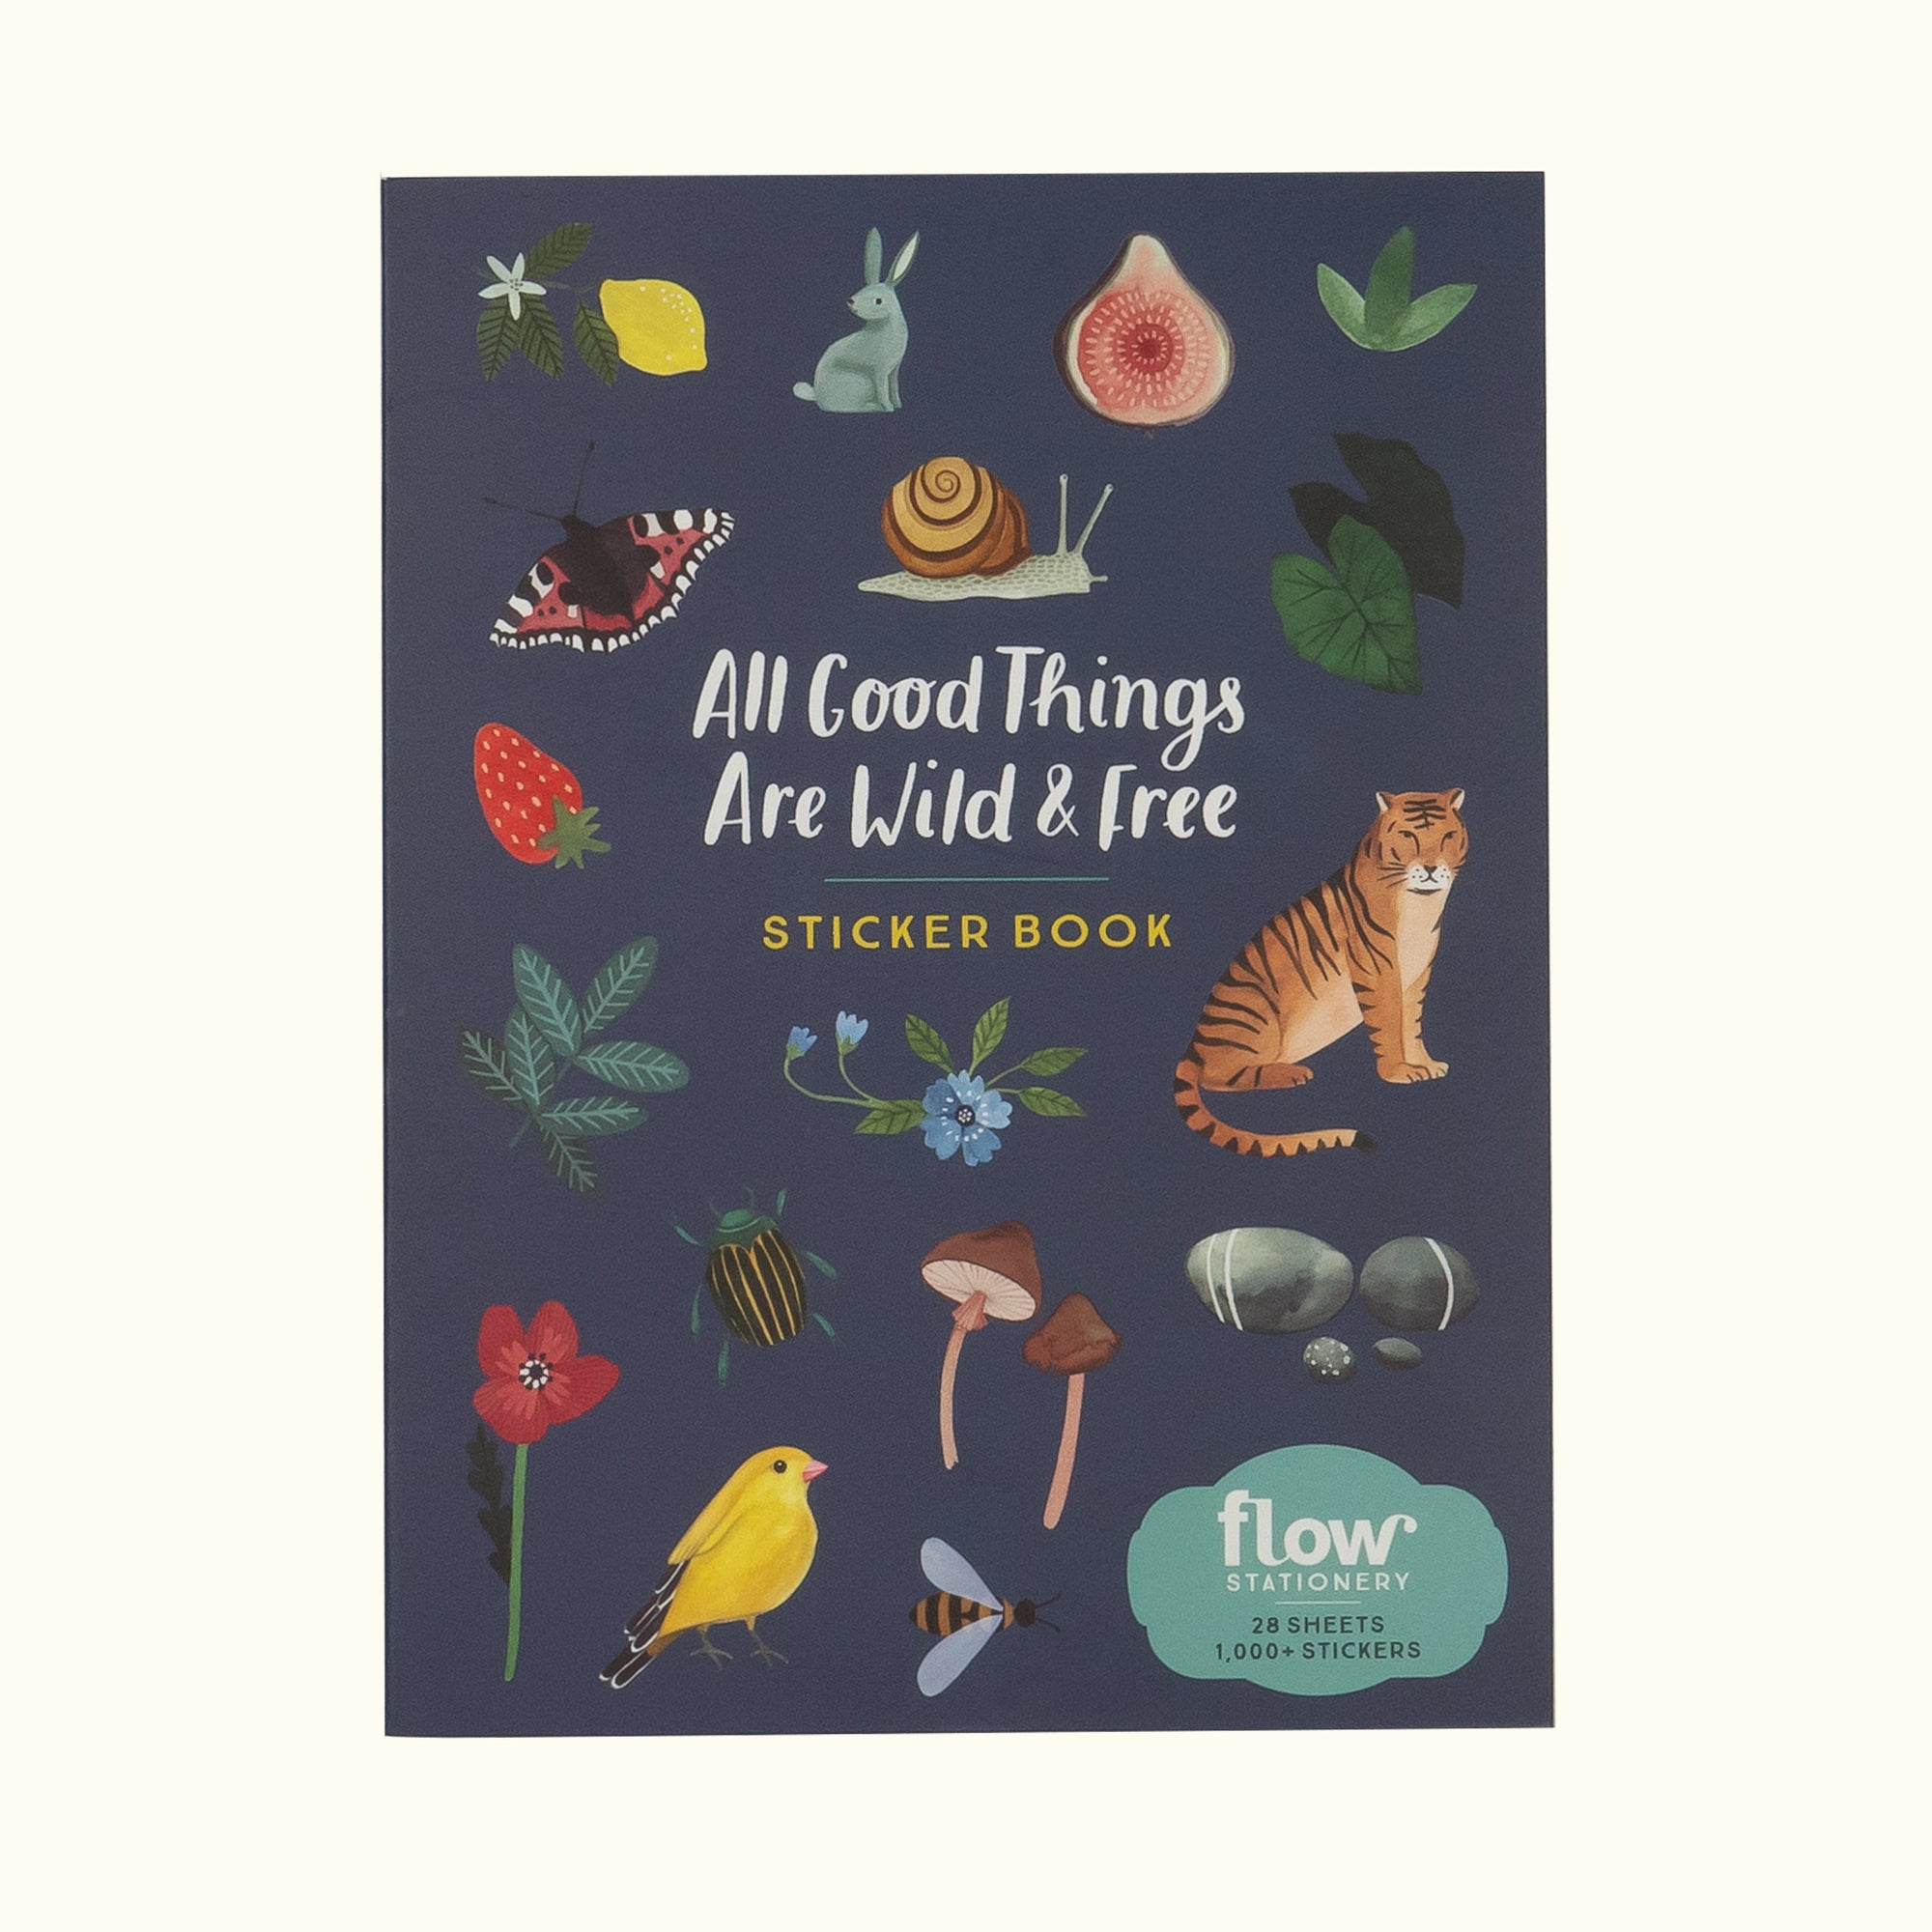 All Good Things Are Wild and Free Sticker Book